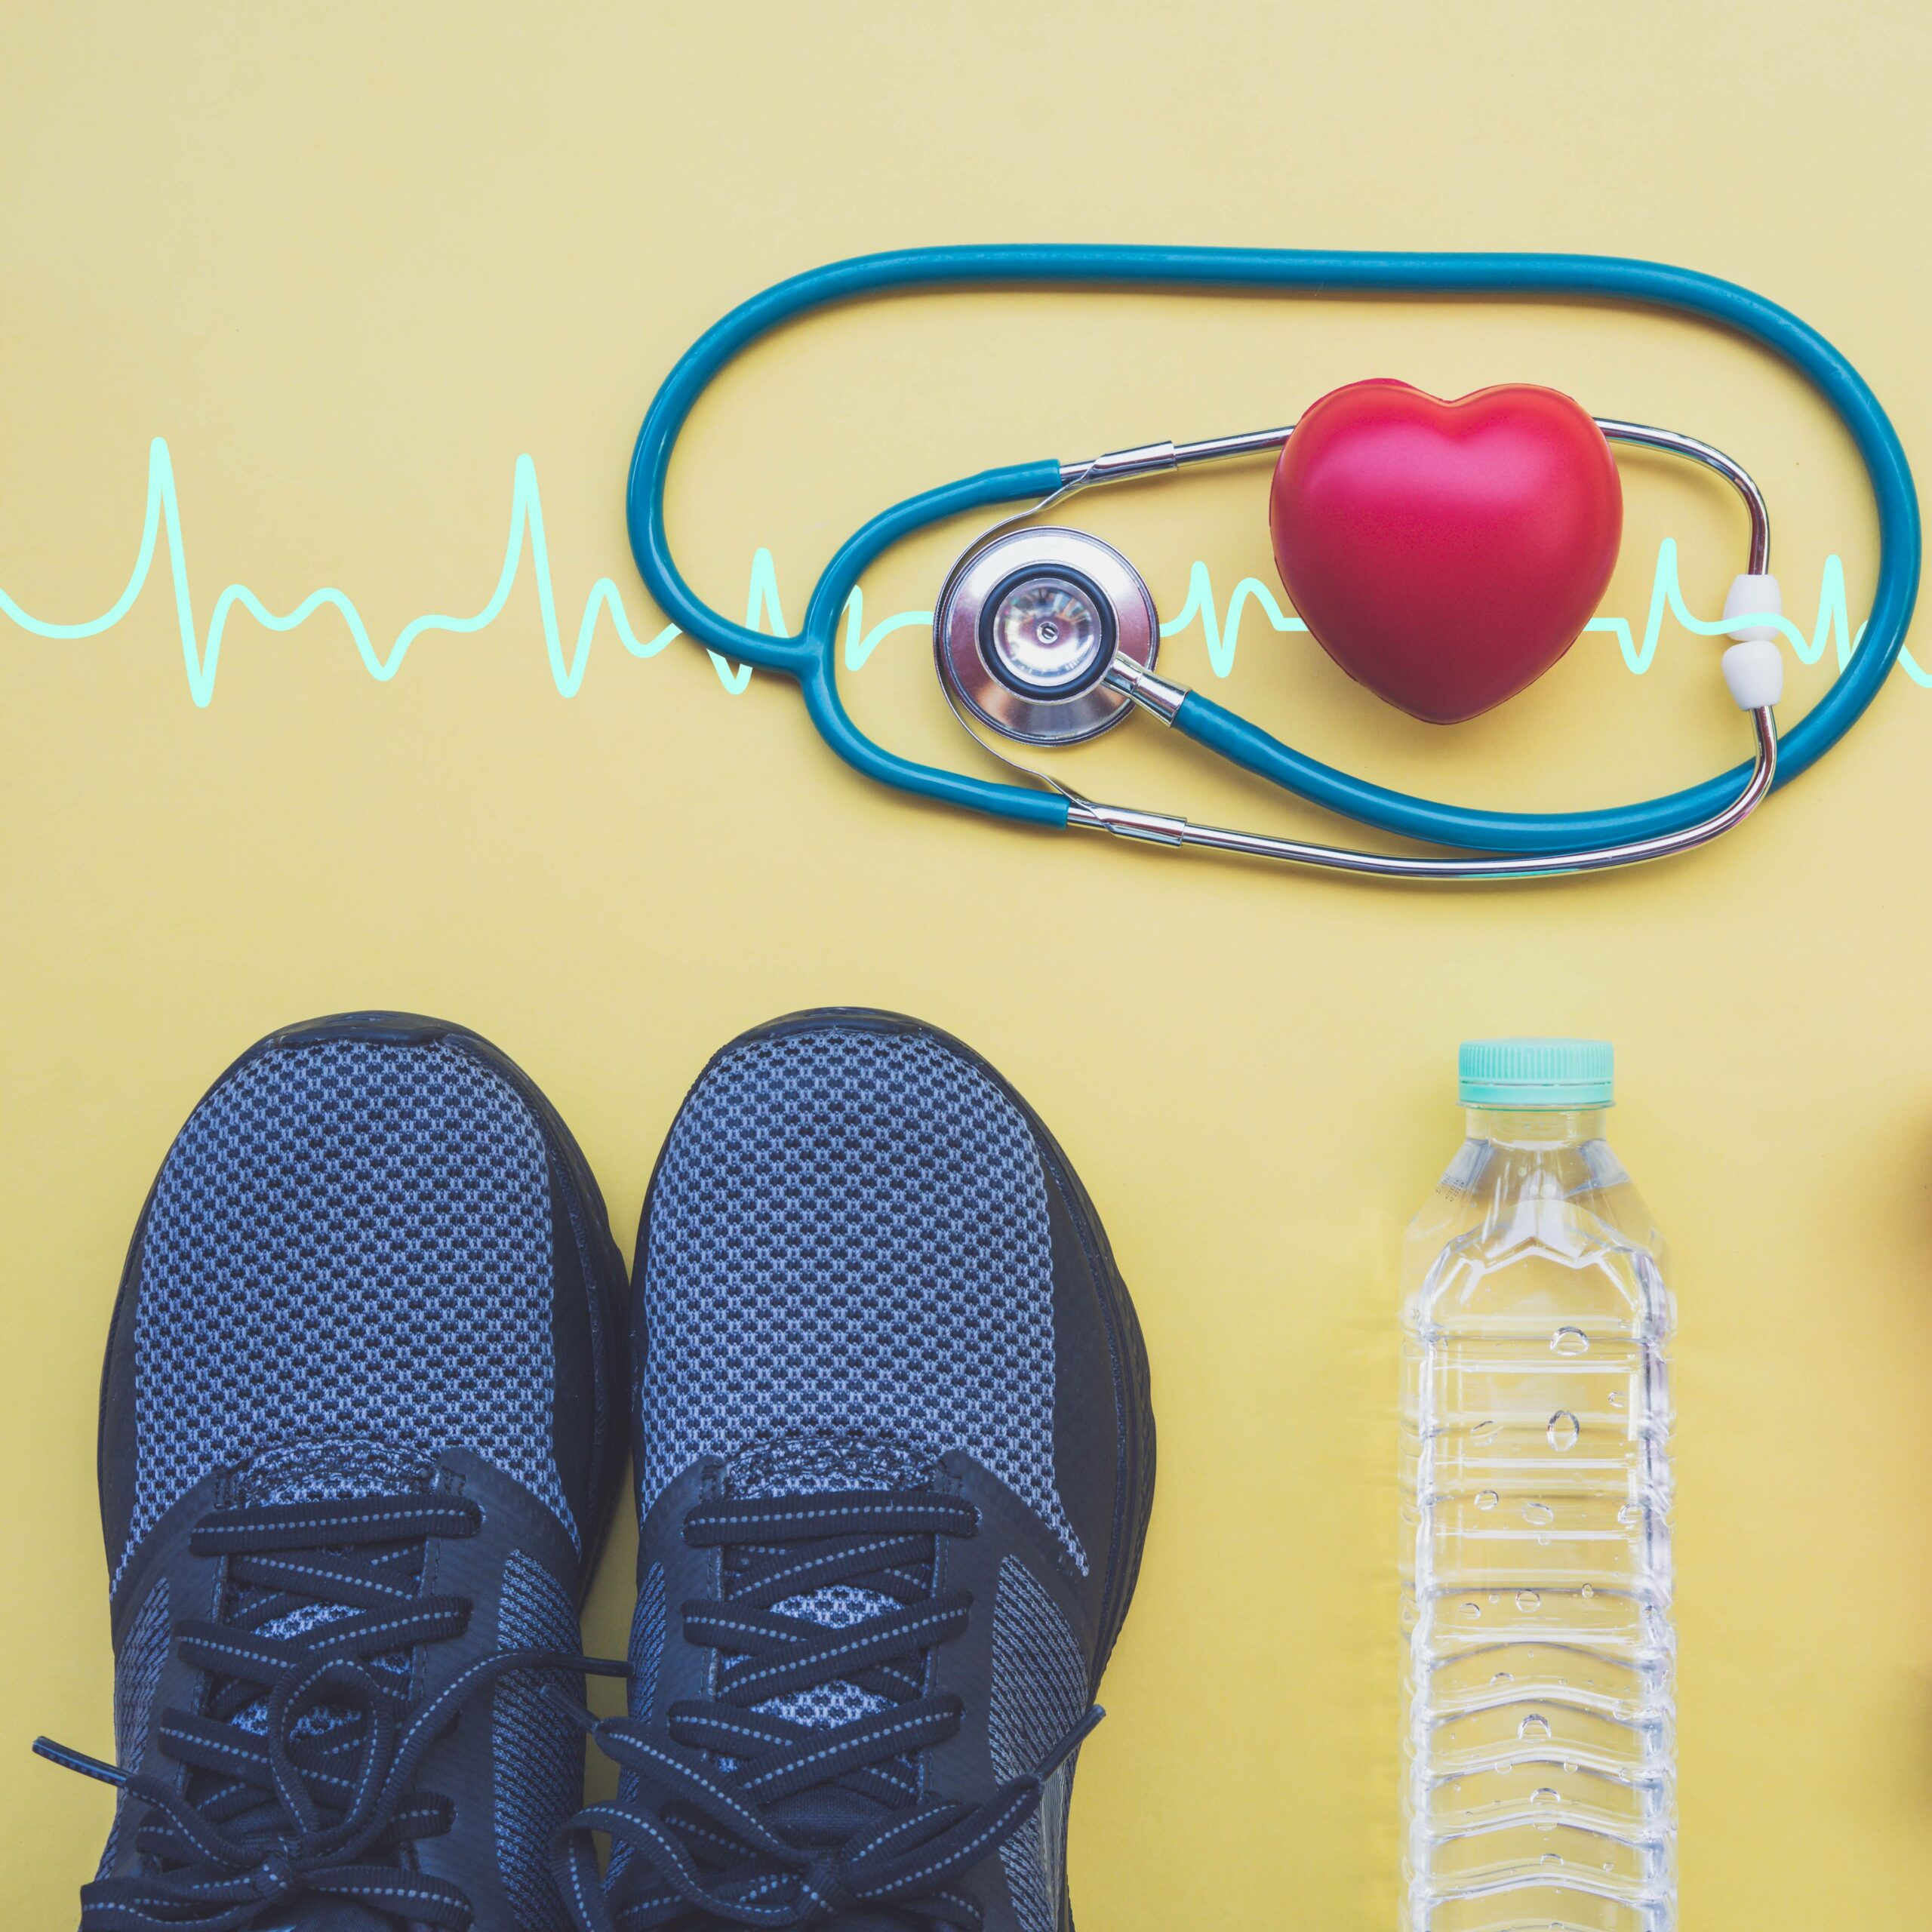 A Photo Of A Pair Of Sneakers, A Bottle Of Water, And A Stethoscope On A Yellow Background. There Is Also A Heartbeat Line.